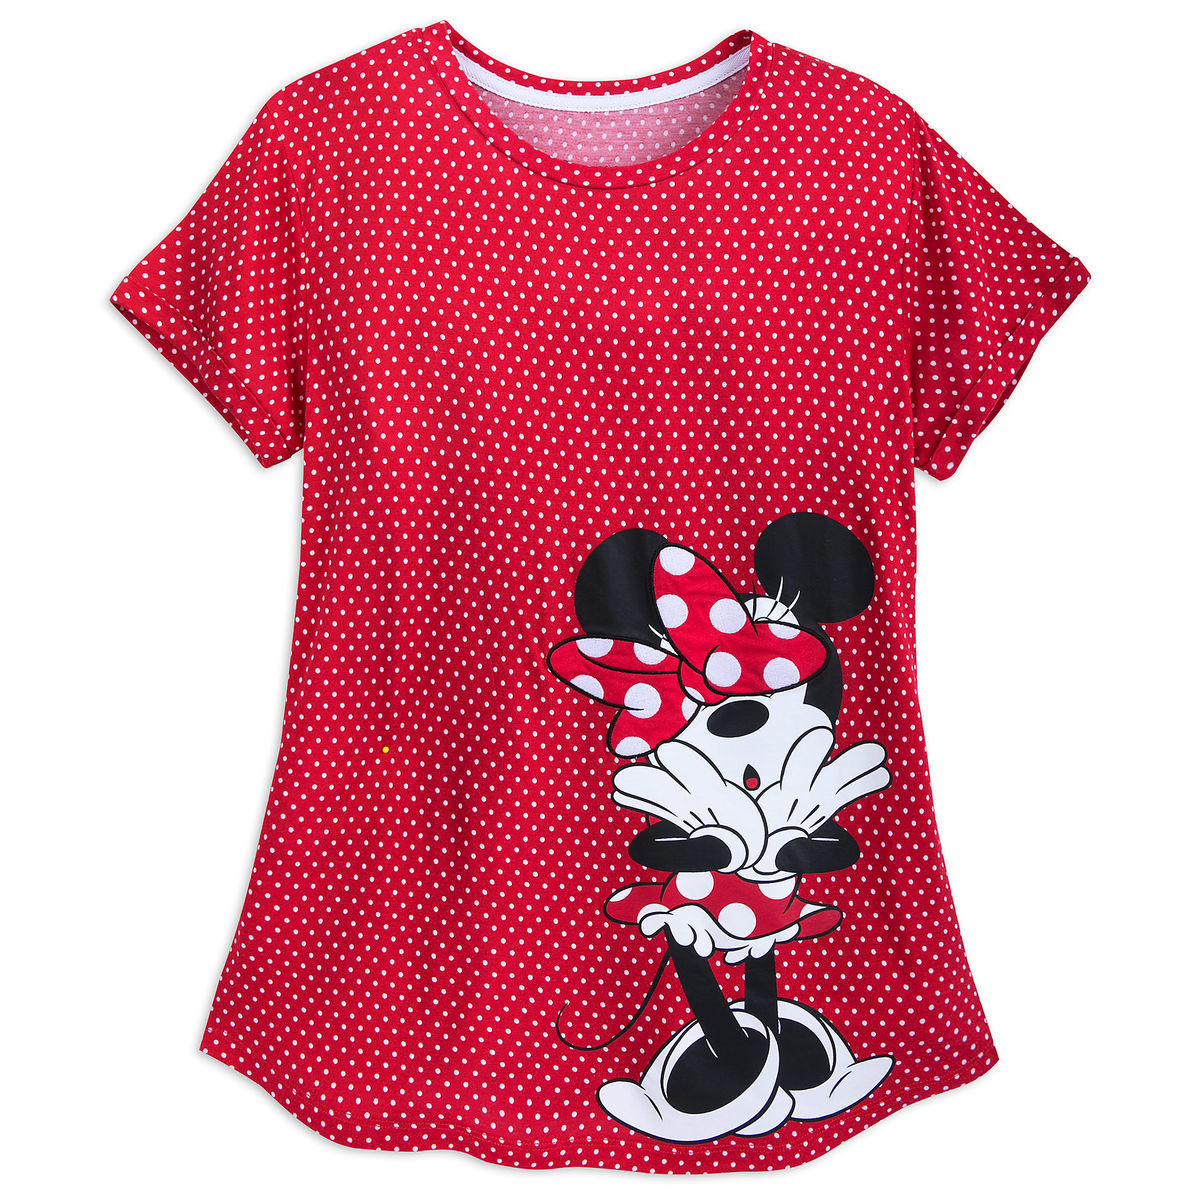 Minnie Mouse Polka Dot Shirt For Women Shopdisney